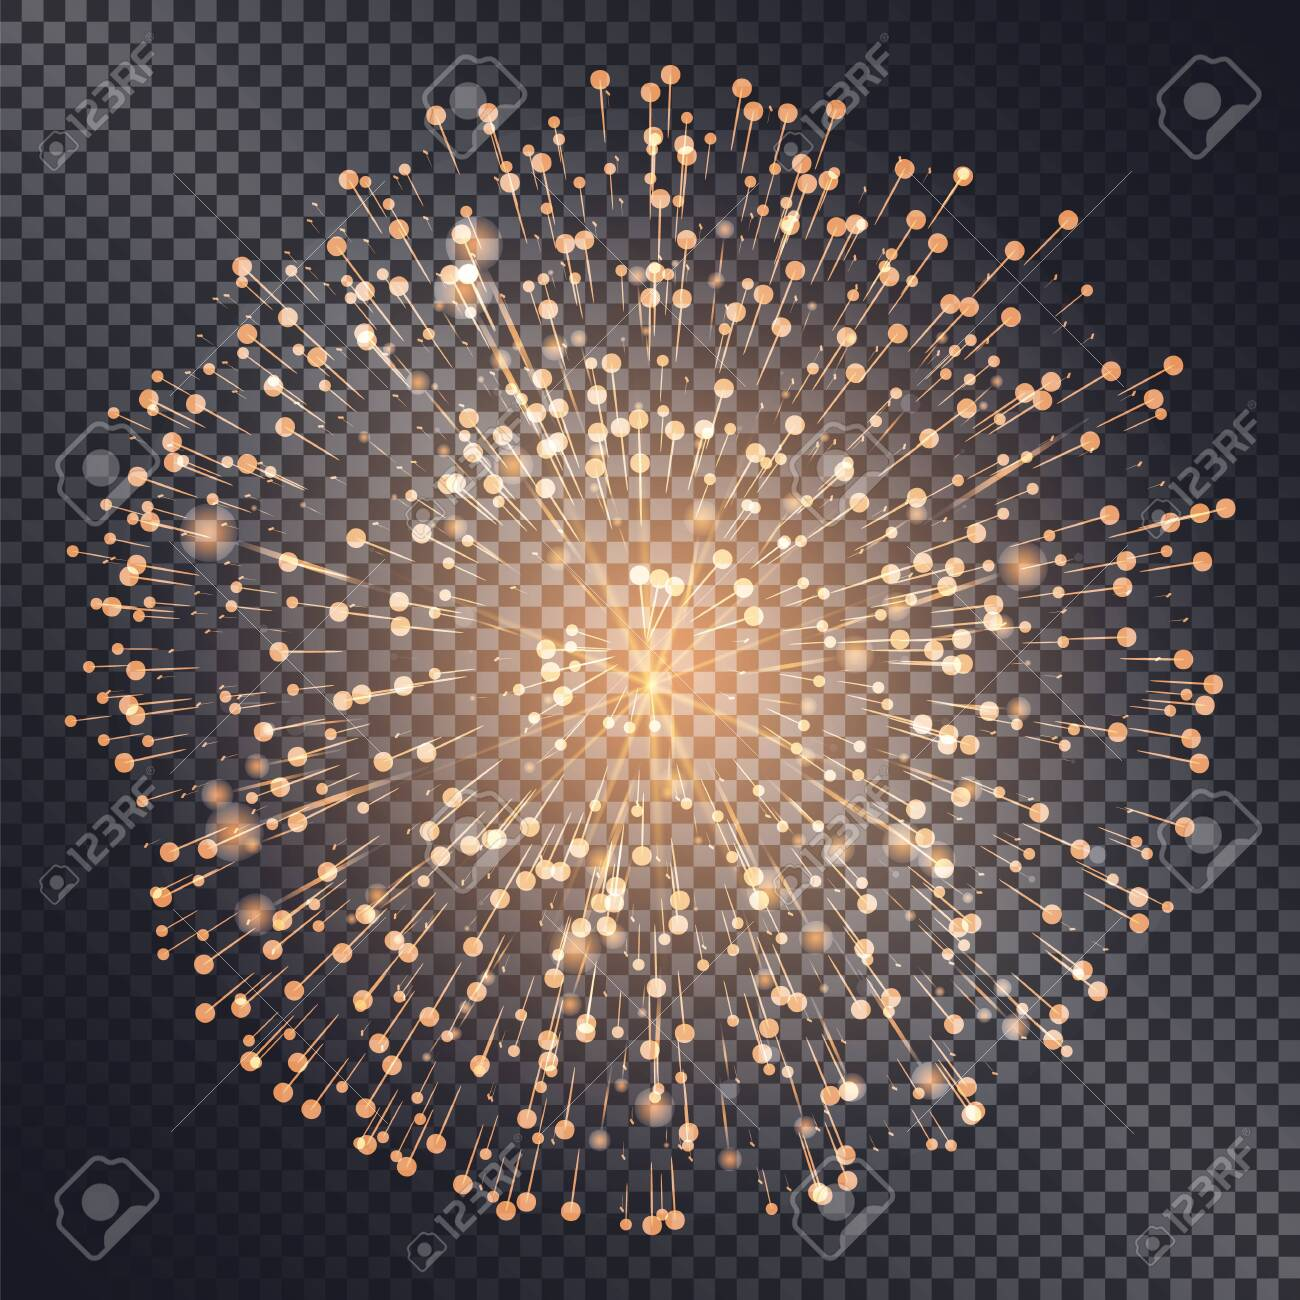 Firework sparkling with lights isolated on transparent background. Explosion for festival or festive moods. New Year celebration of holidays. Bright and shiny decoration. Vector in flat style - 134367234